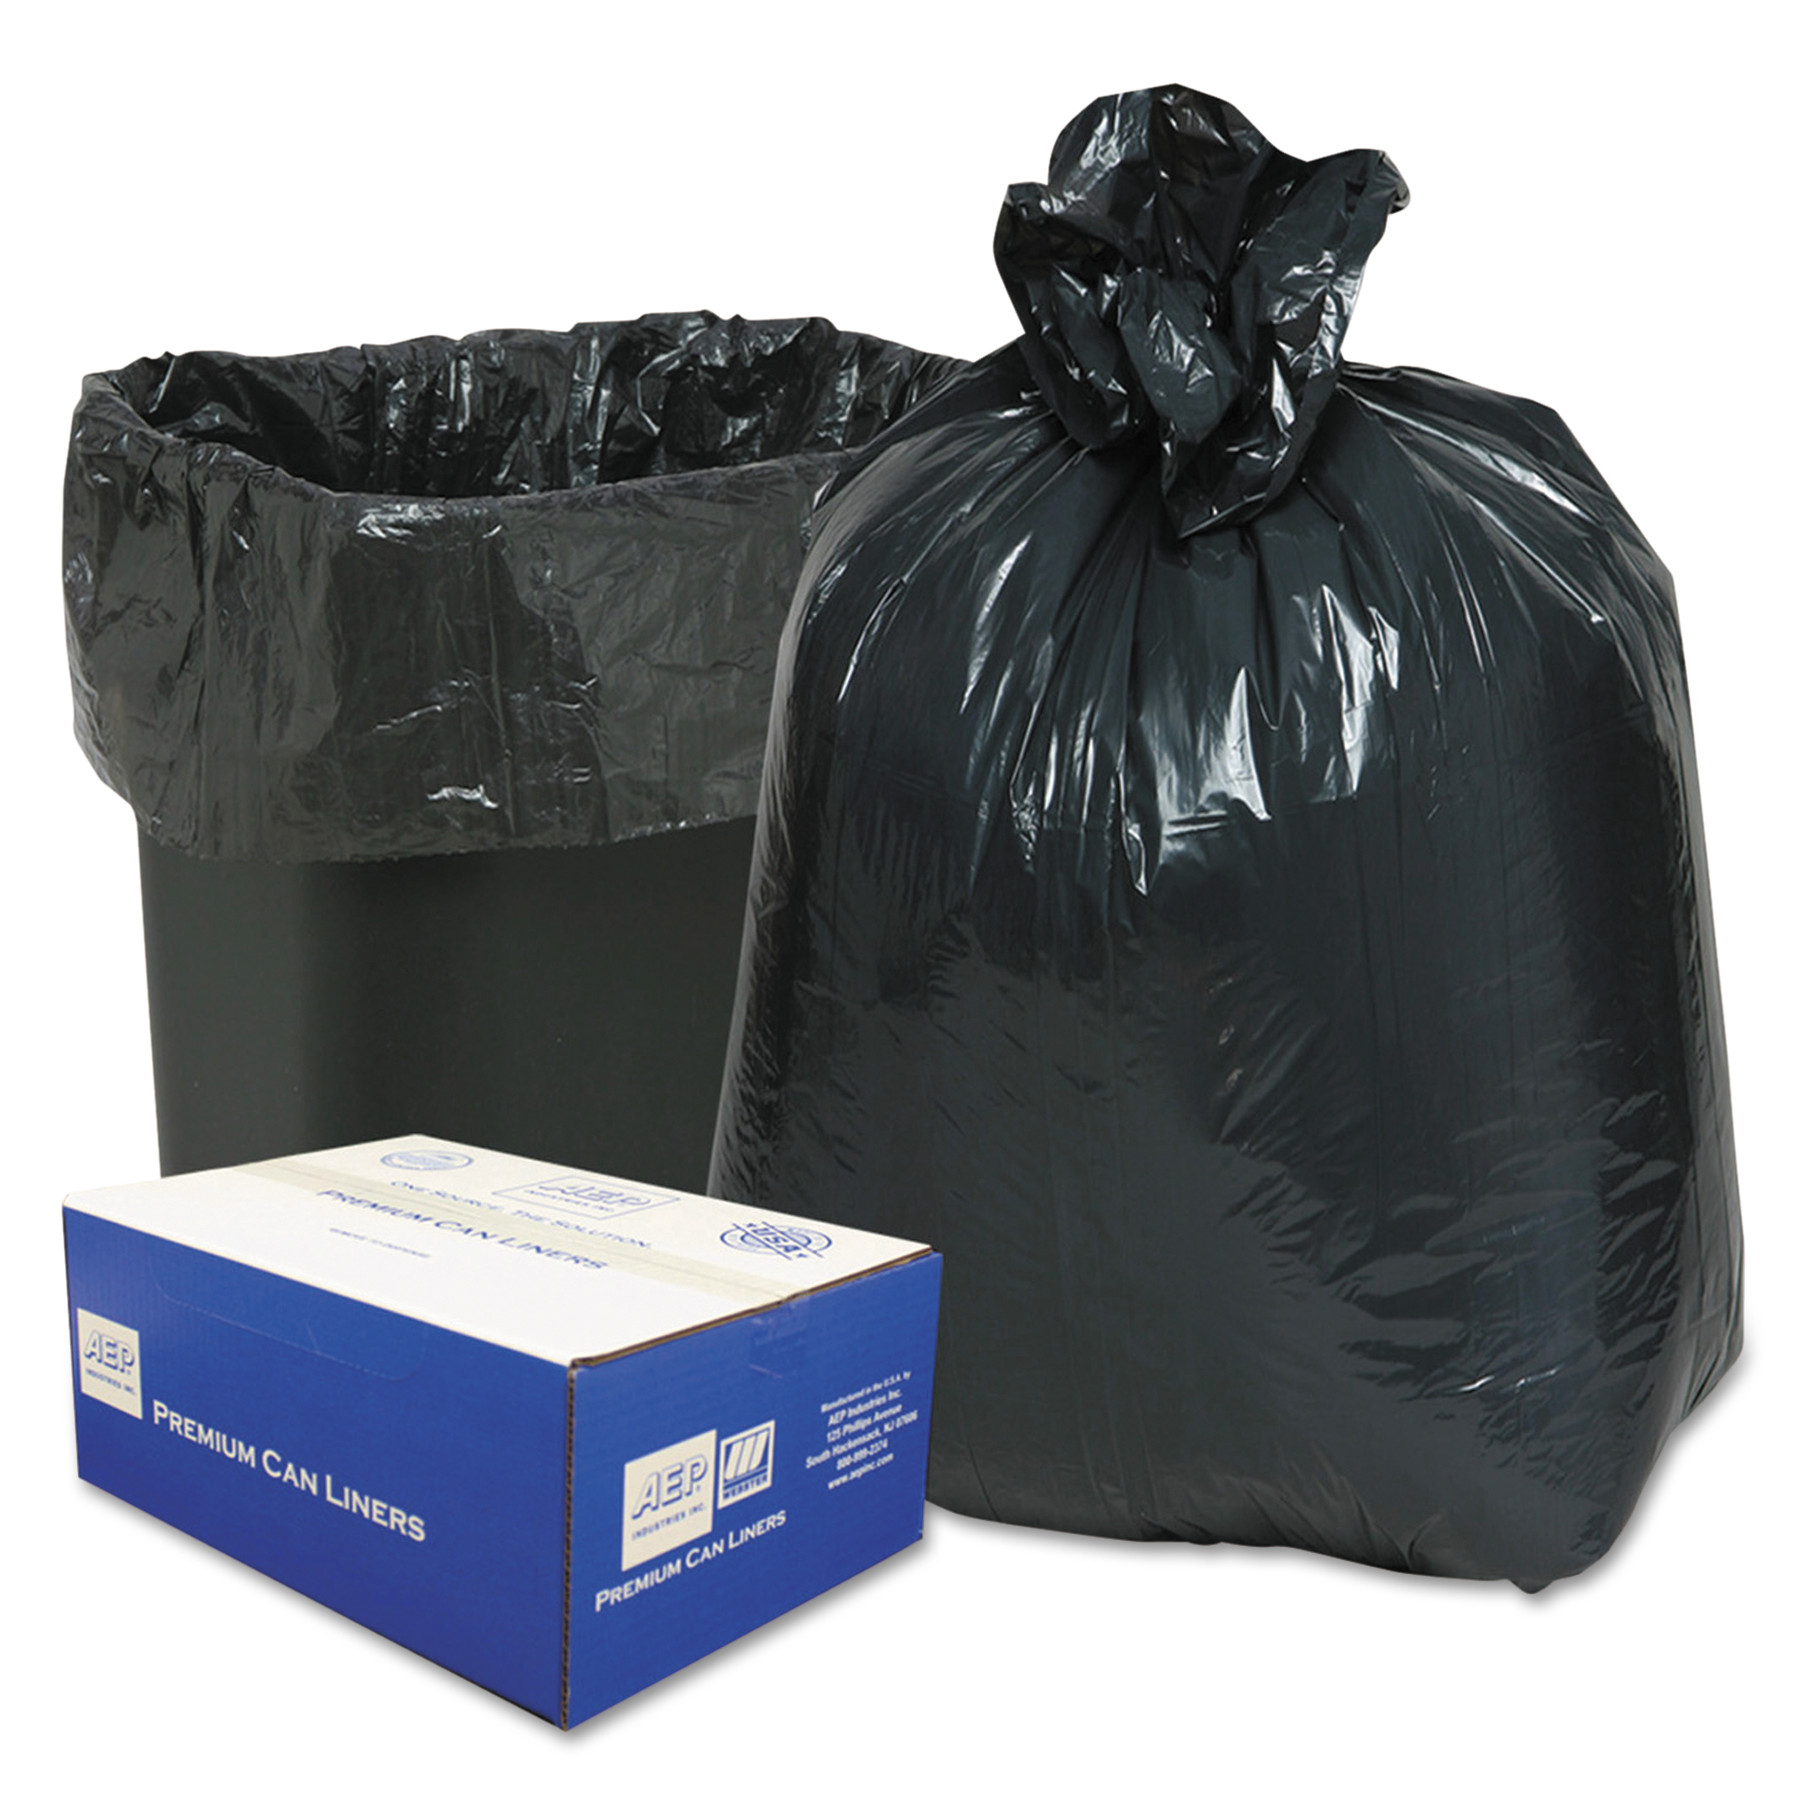 Classic Opaque Brown/Black Low-Density Can Liners, 7-10 gal, 500 ct